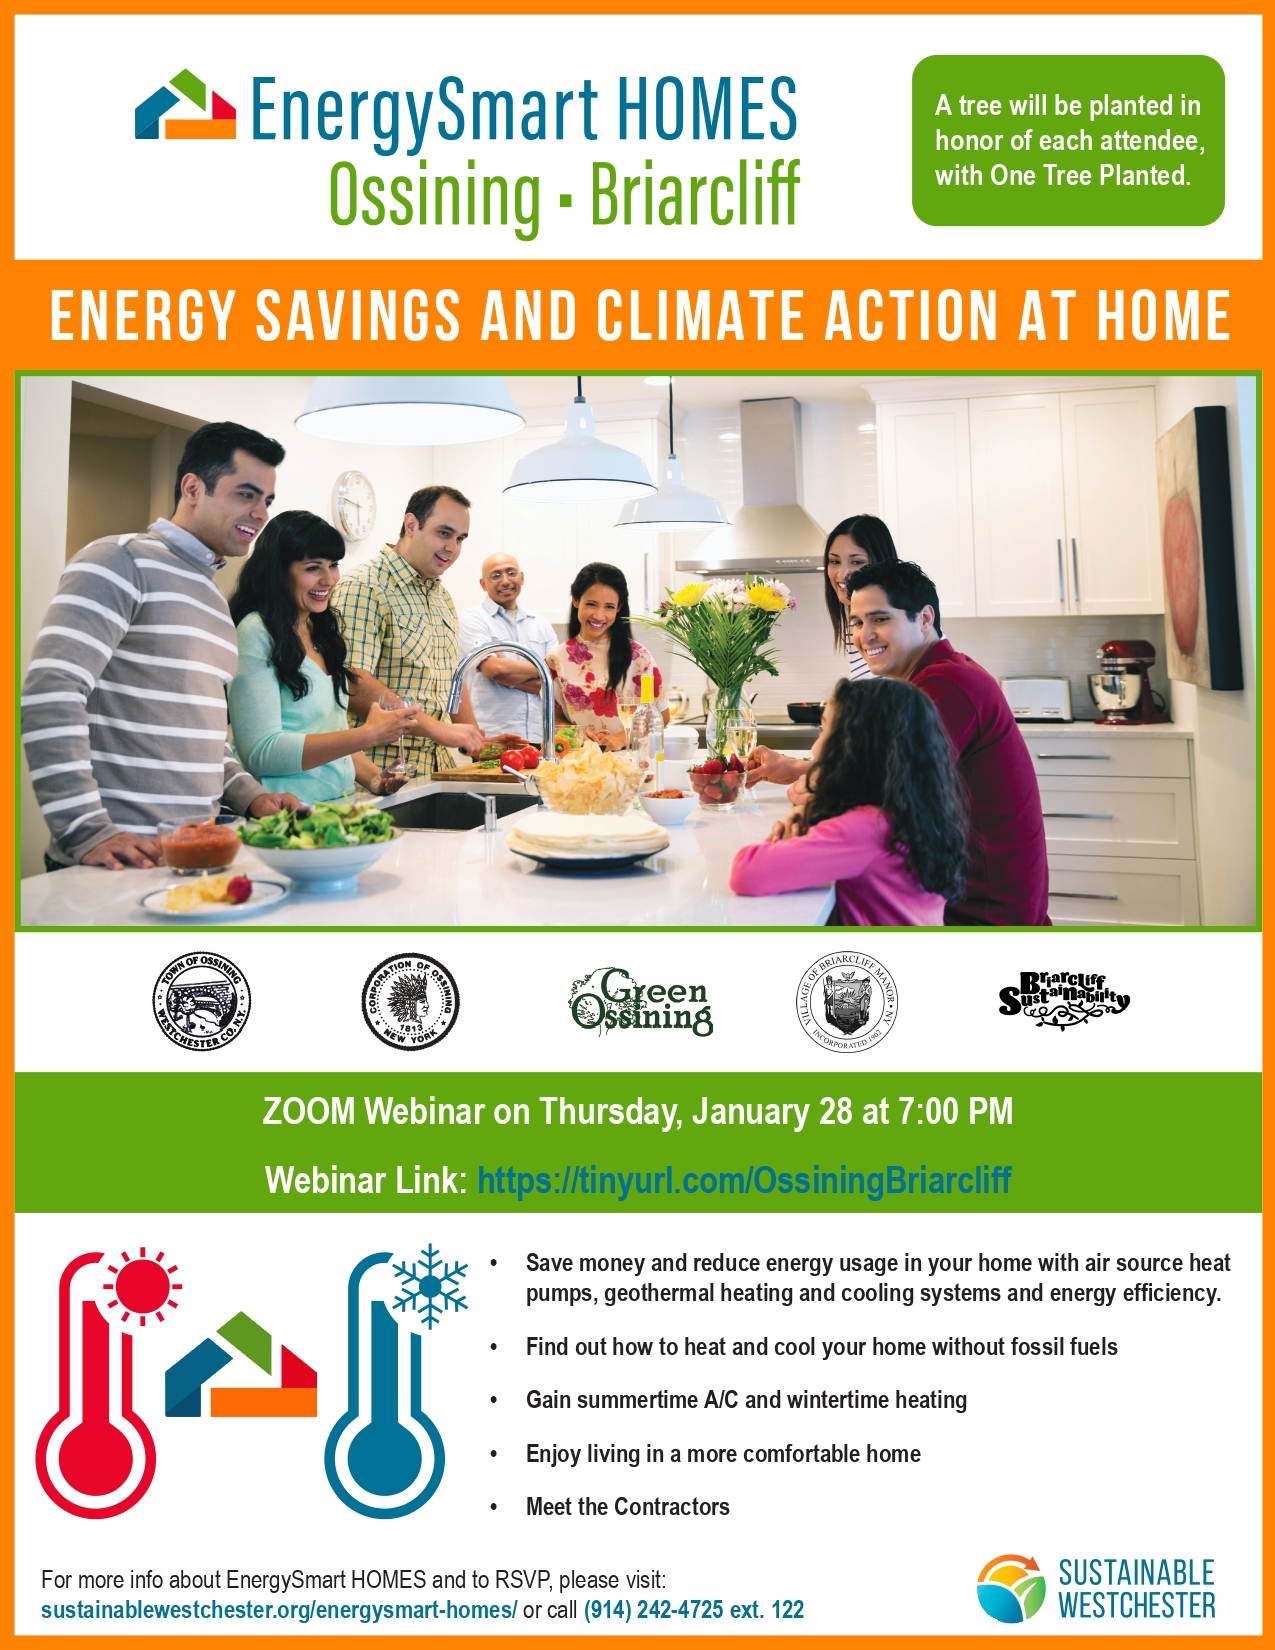 High Heating Bills? Join the EnergySmart Homes Ossining & Briarcliff Webinar